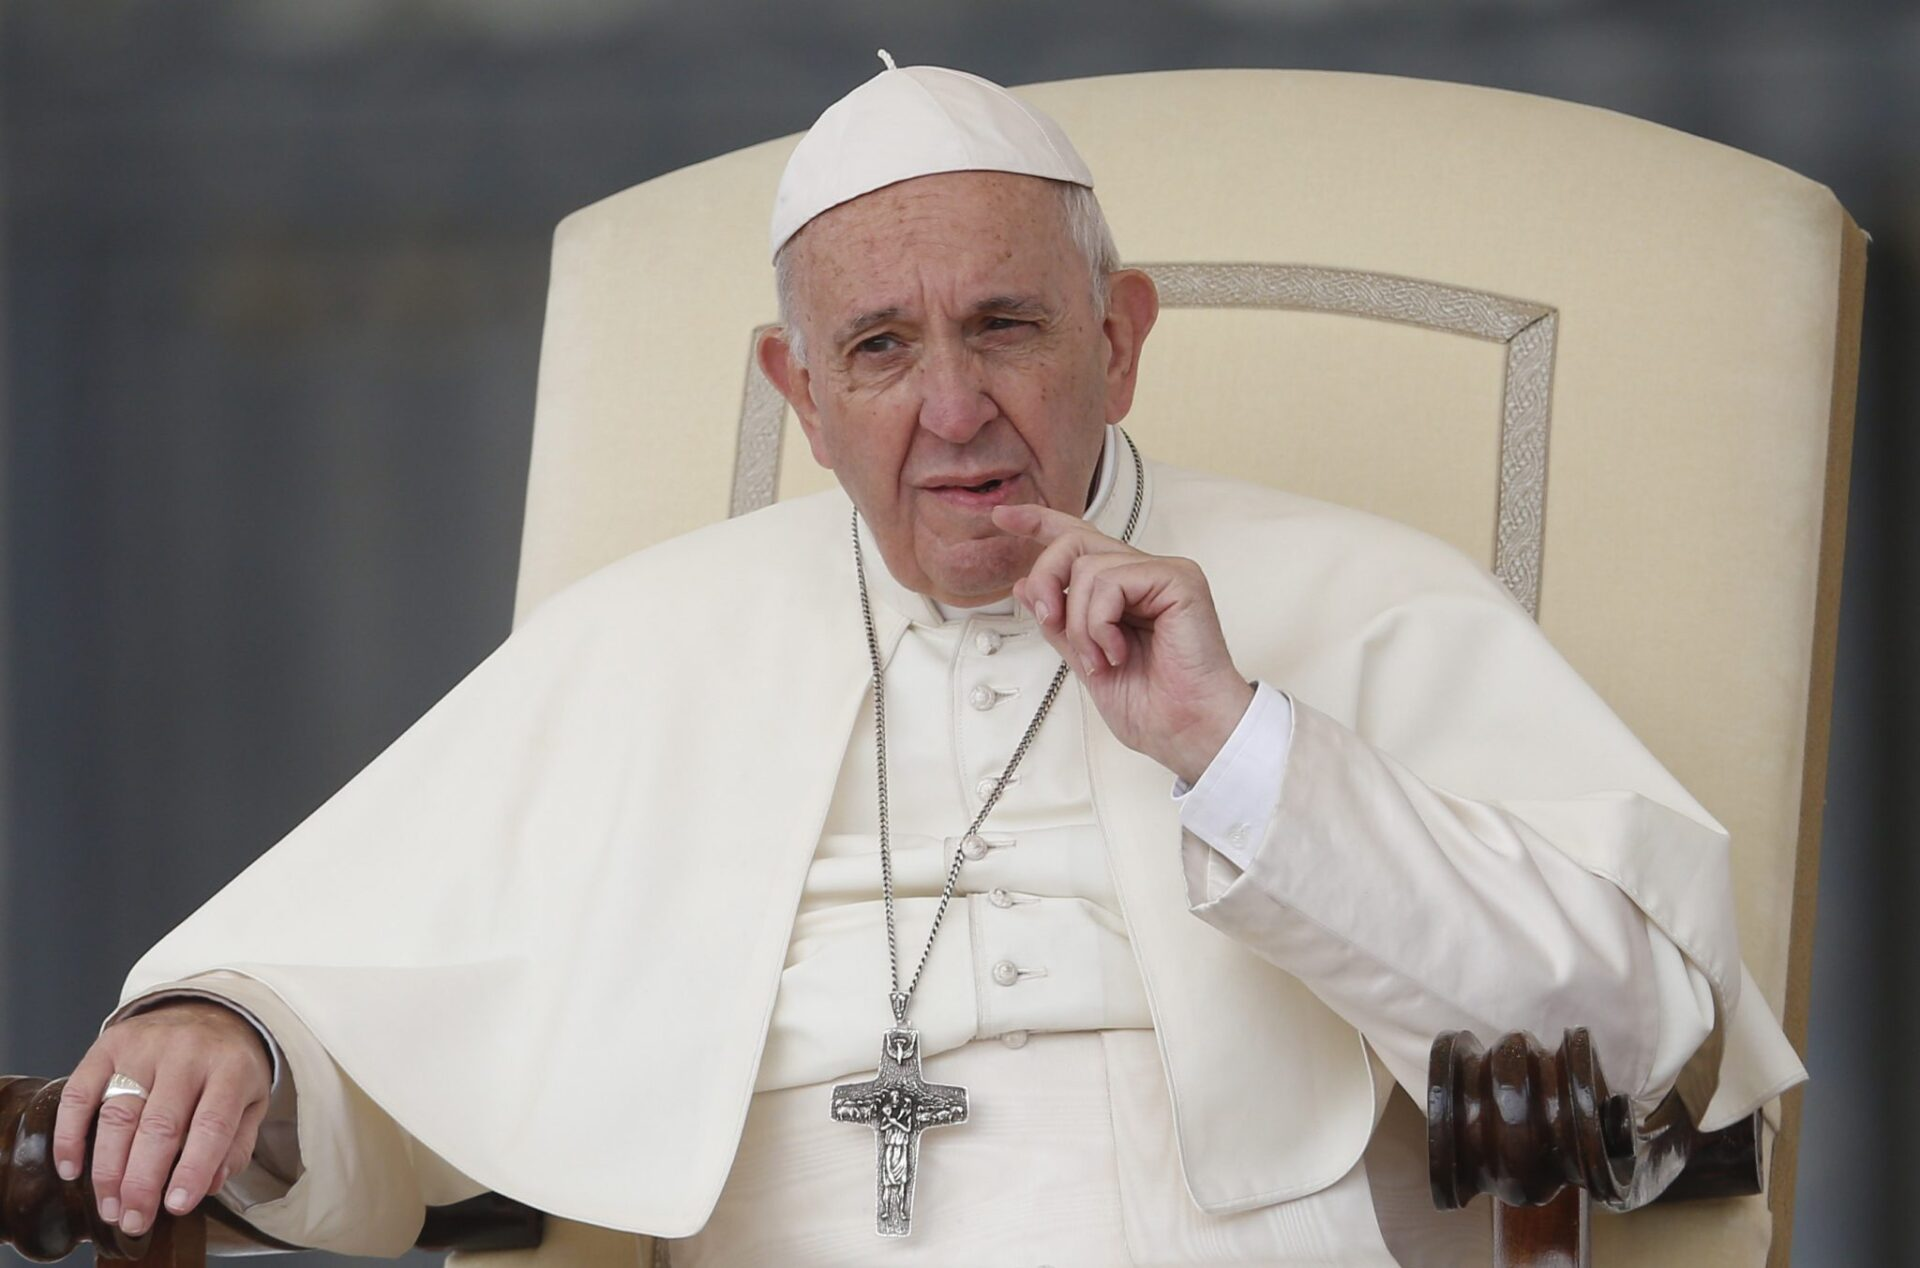 Pope labels critics of the Catholic Church 'friends of the devil'